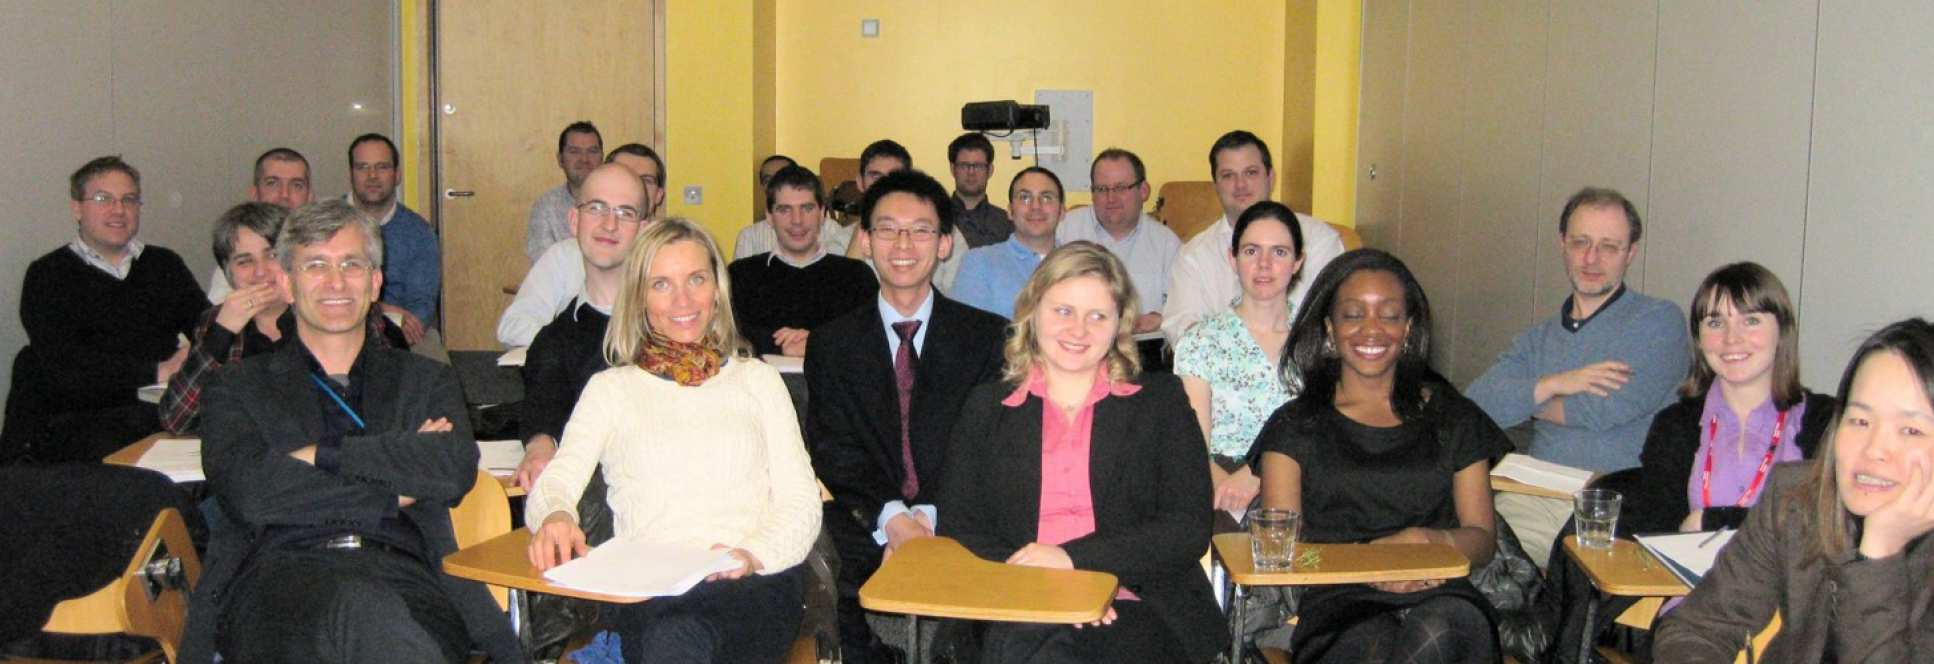 Participants of an update meeting, February 2011